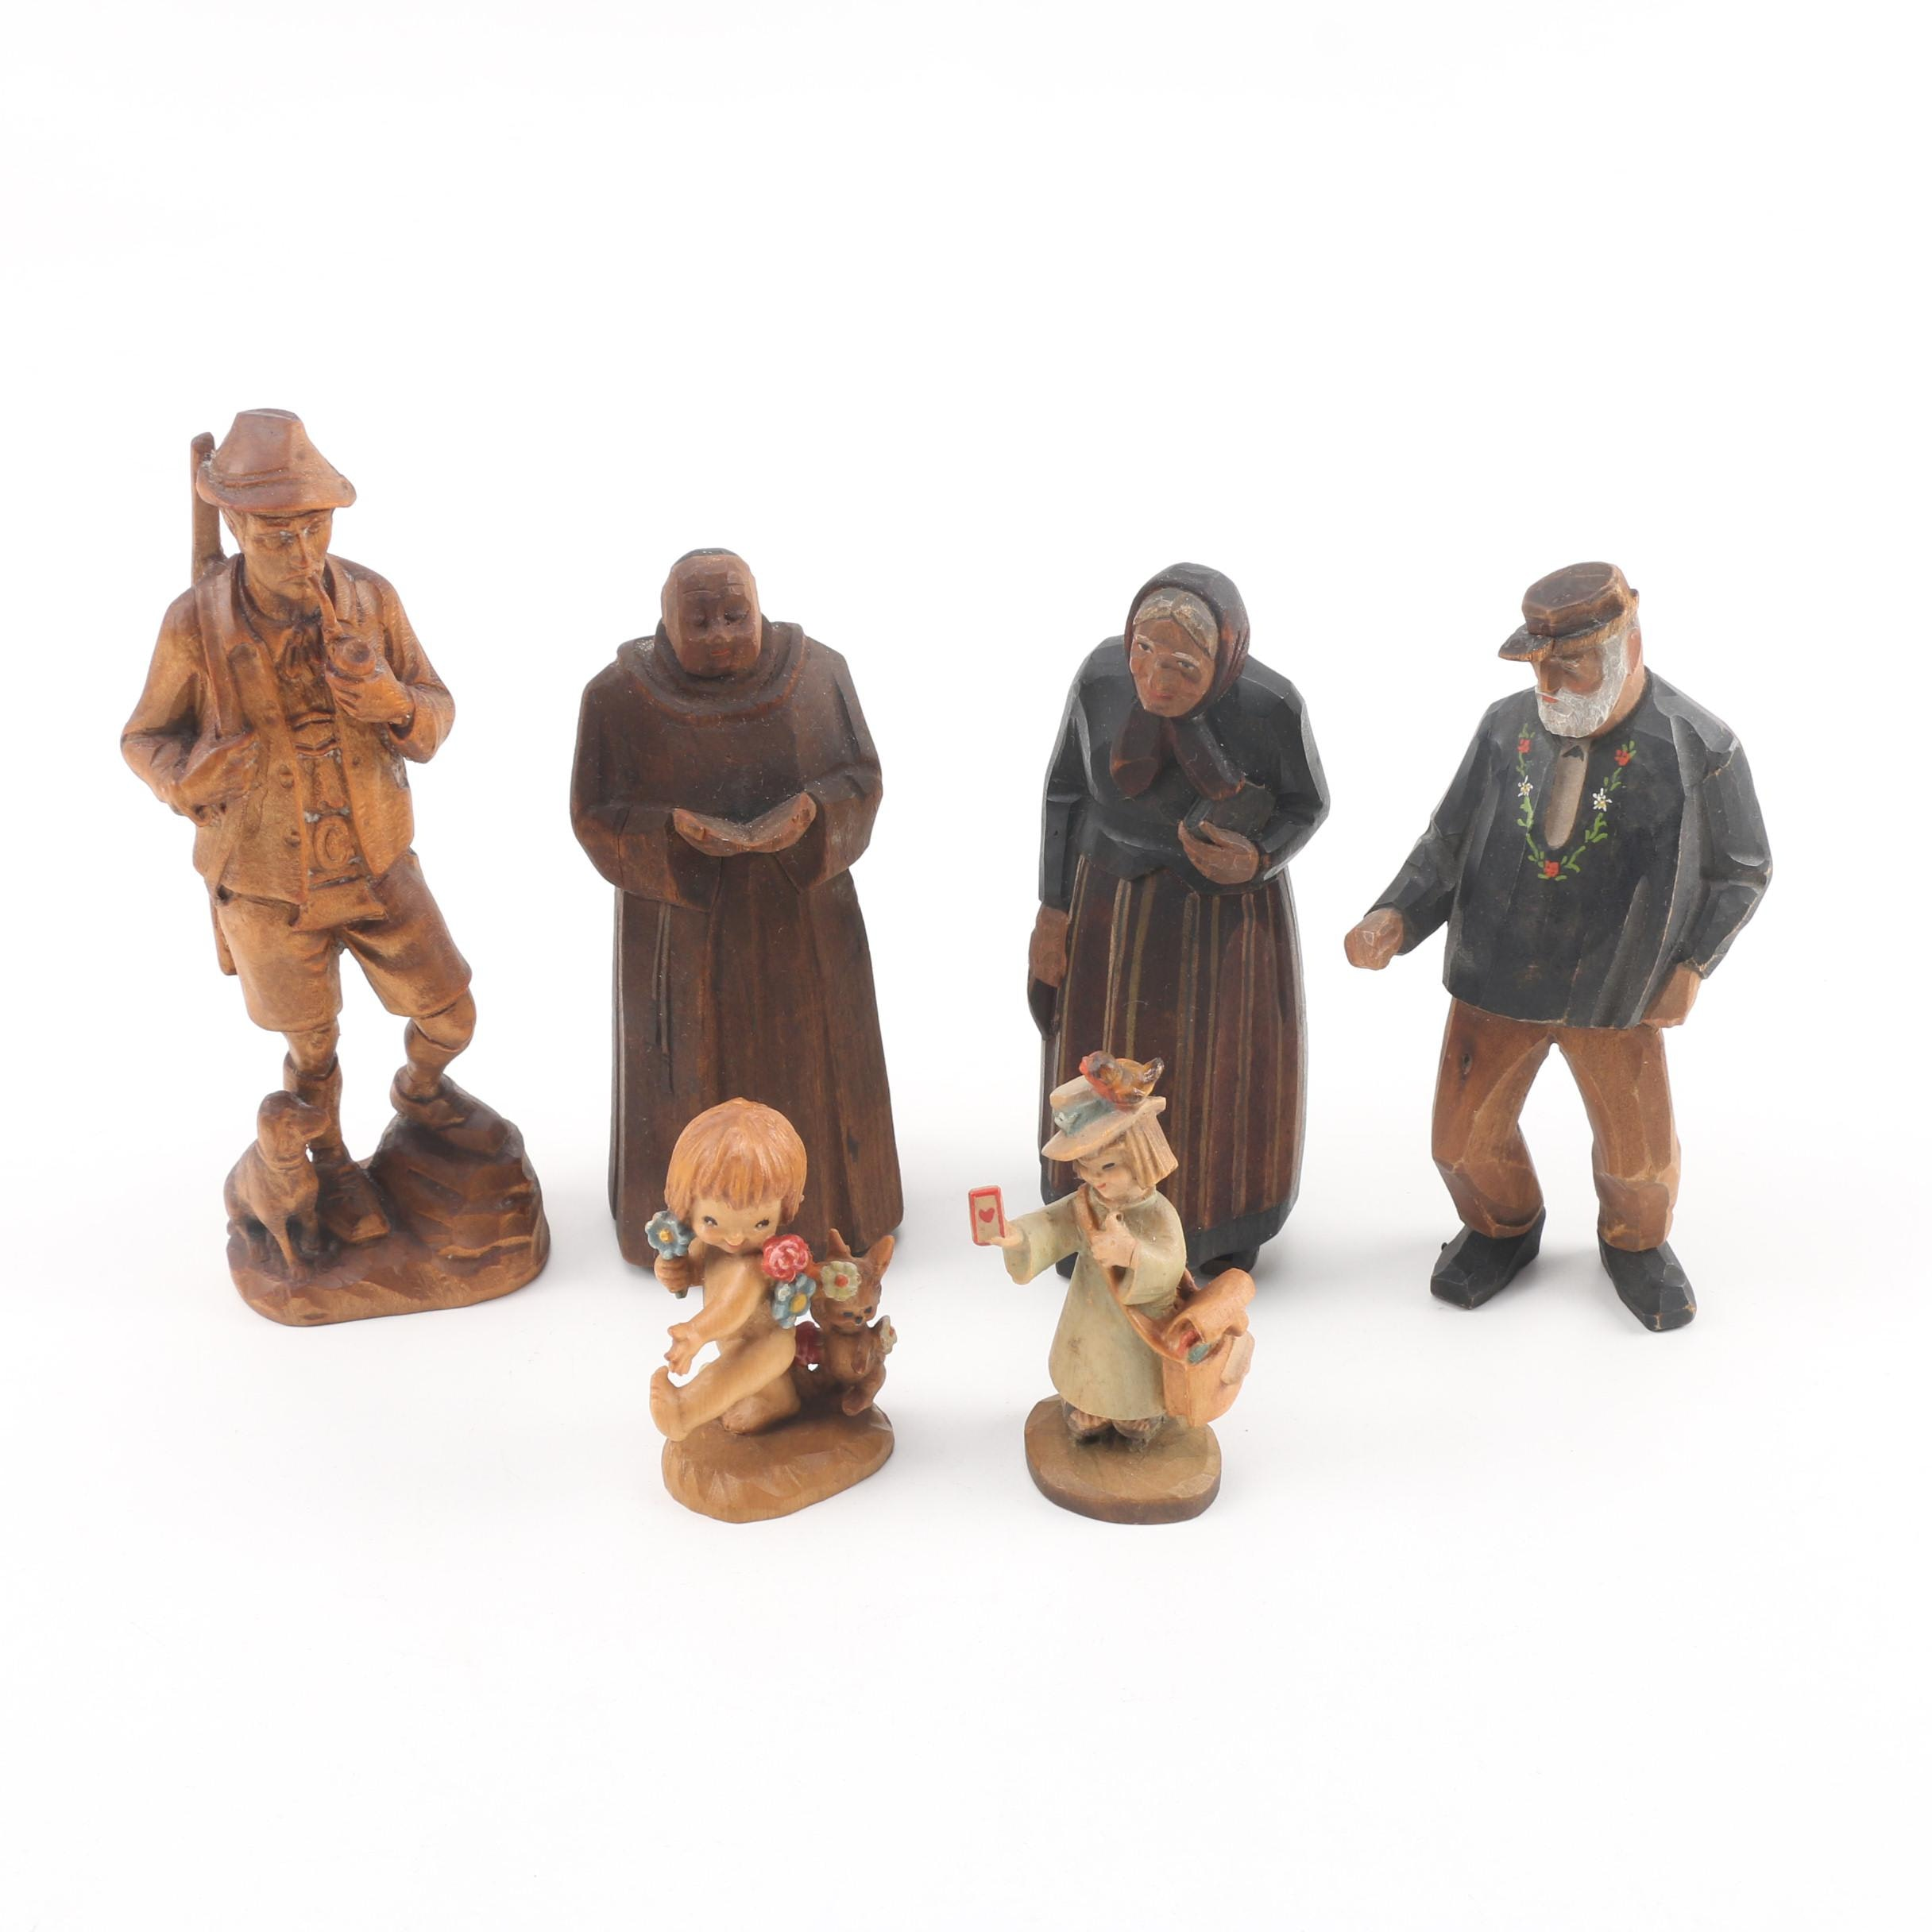 Carved Wood Figurines featuring Anri